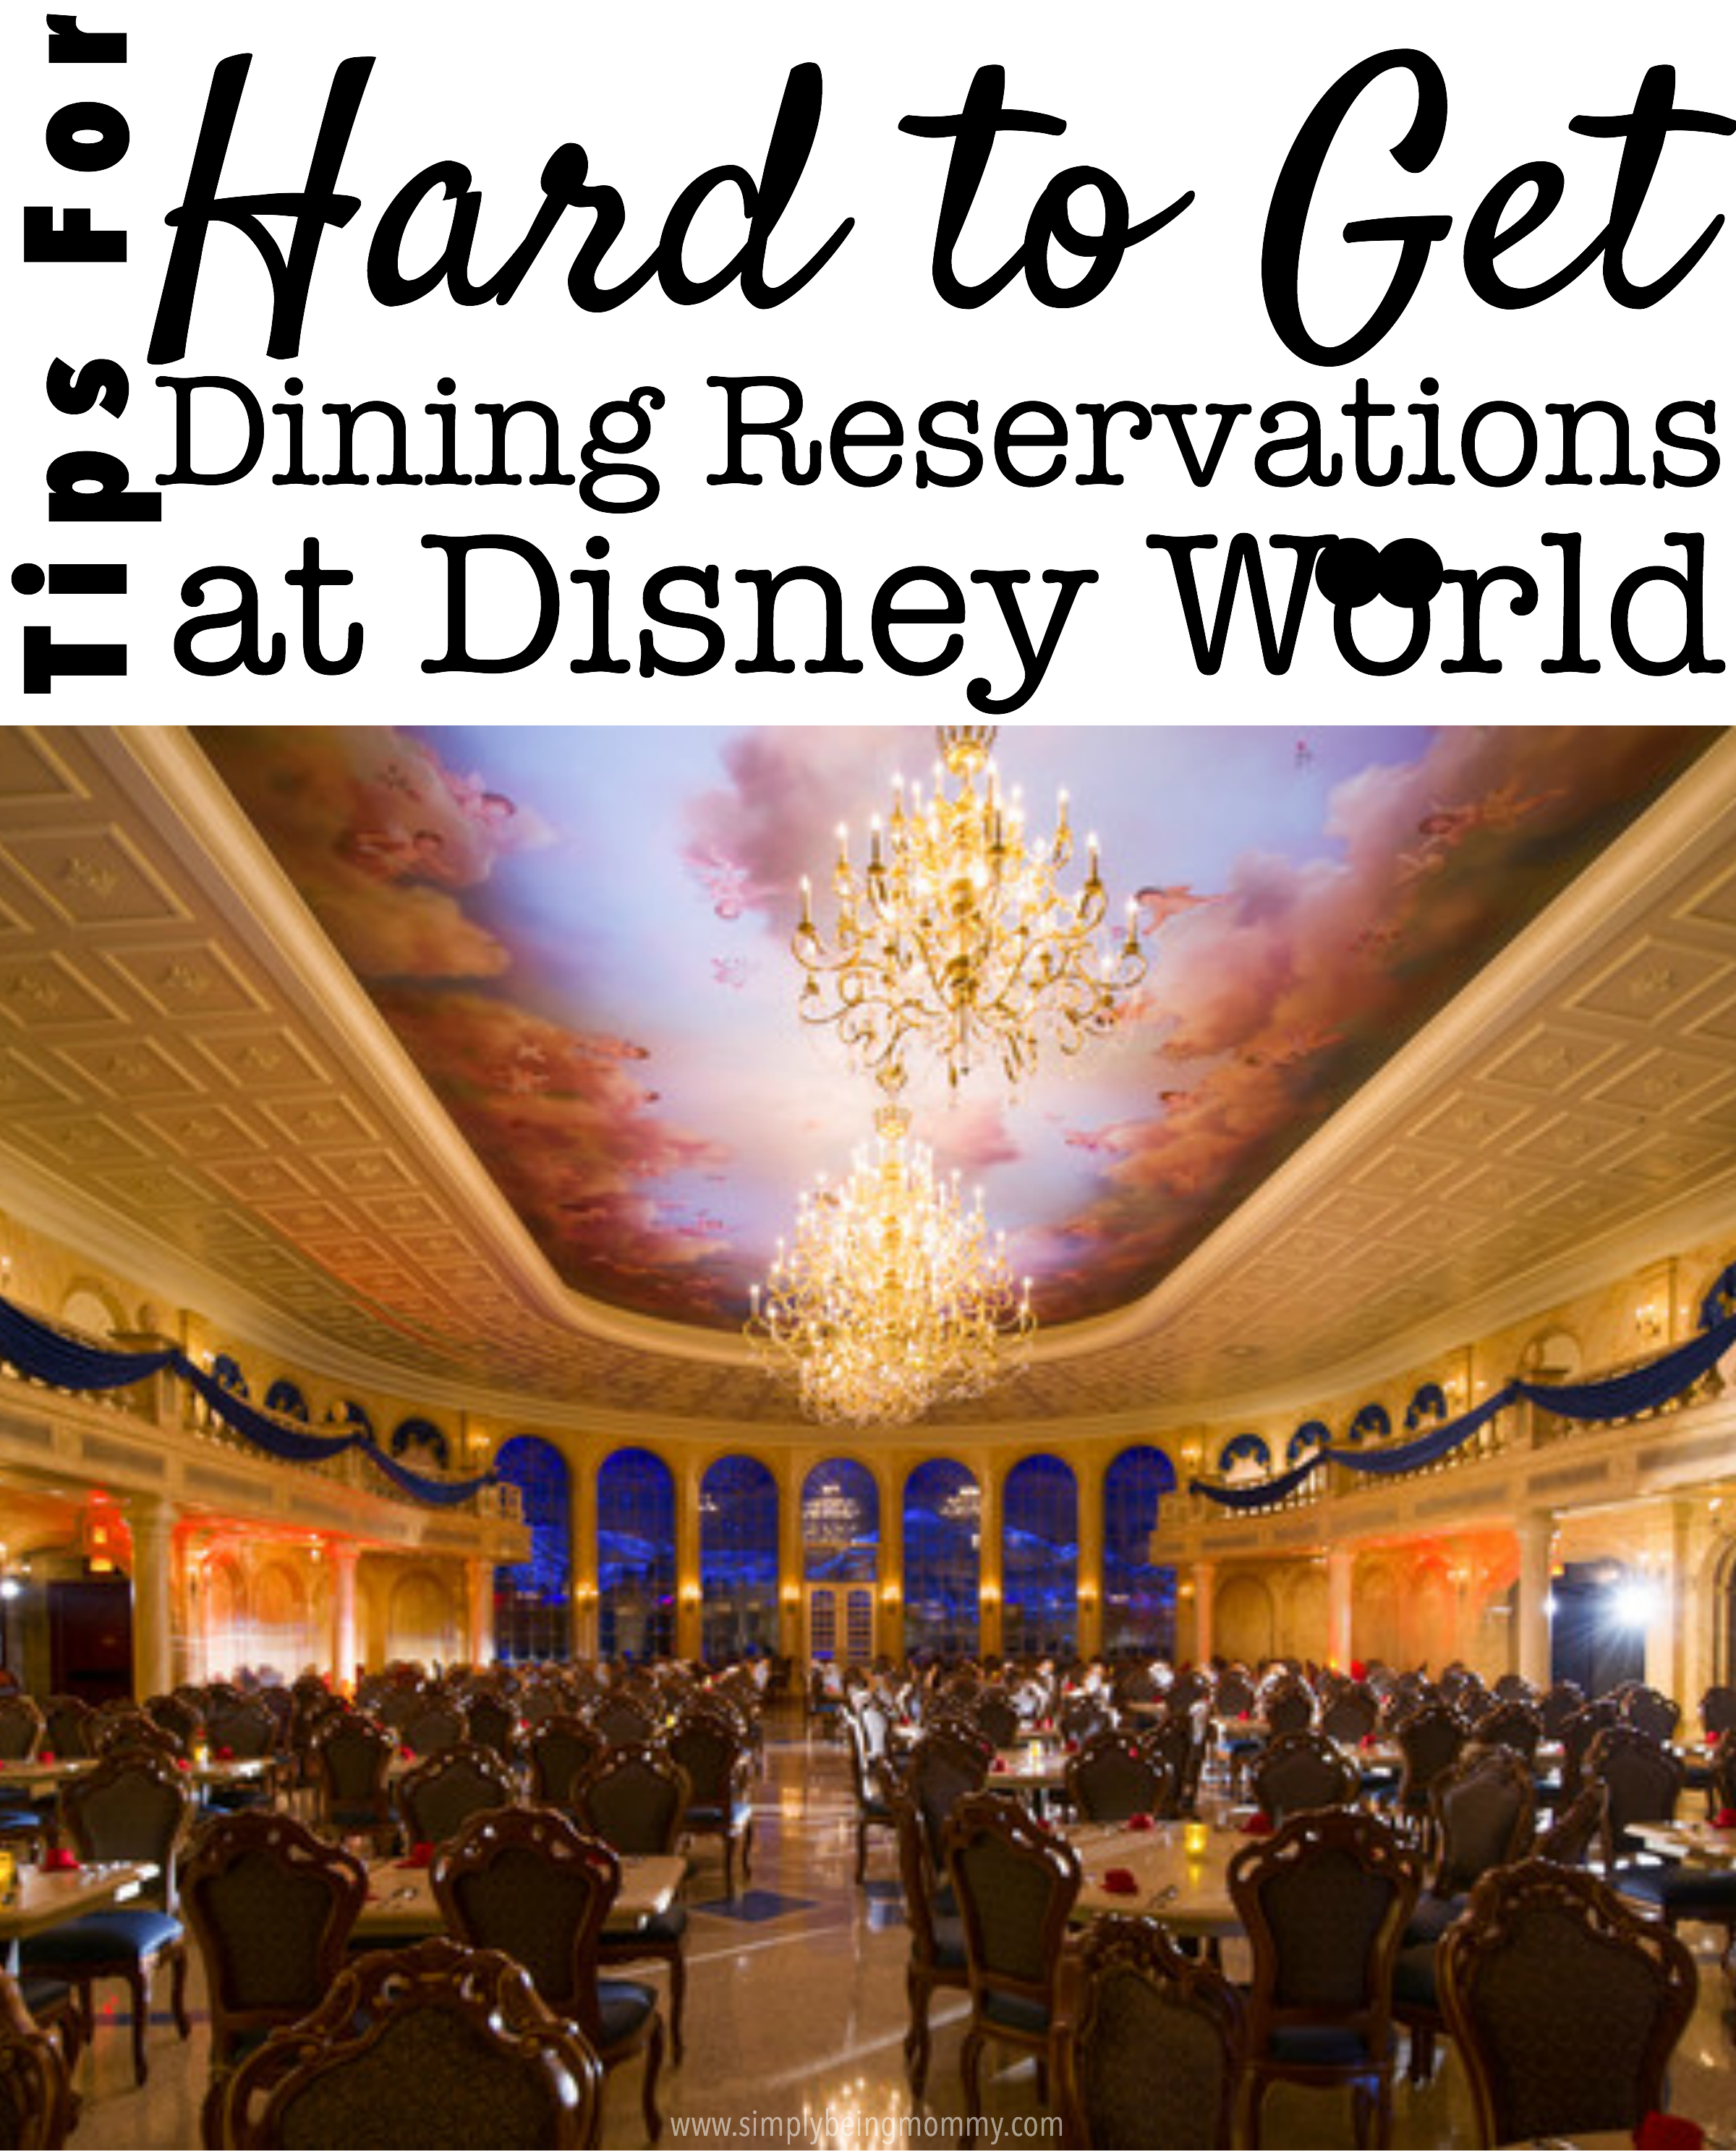 Your Disney vacation has to be perfect, right? Melanie shares these tips for hard to get dining reservations at Disney World.